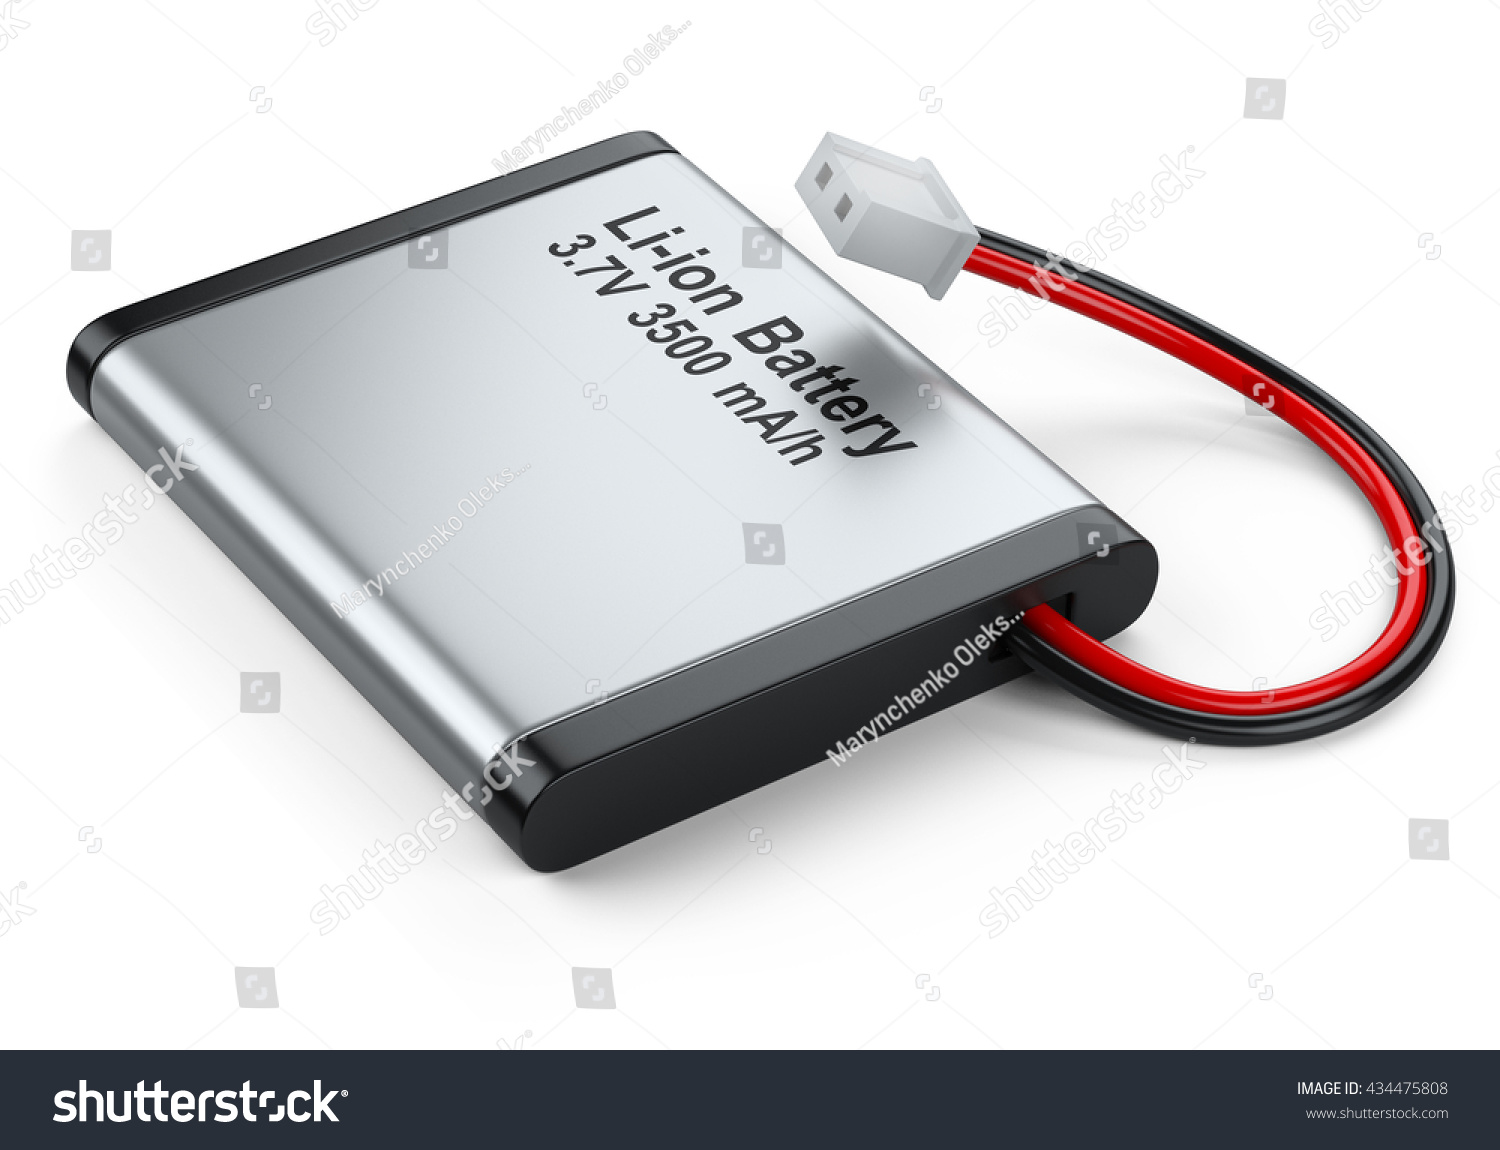 Image result for lithium ion battery shutterstock